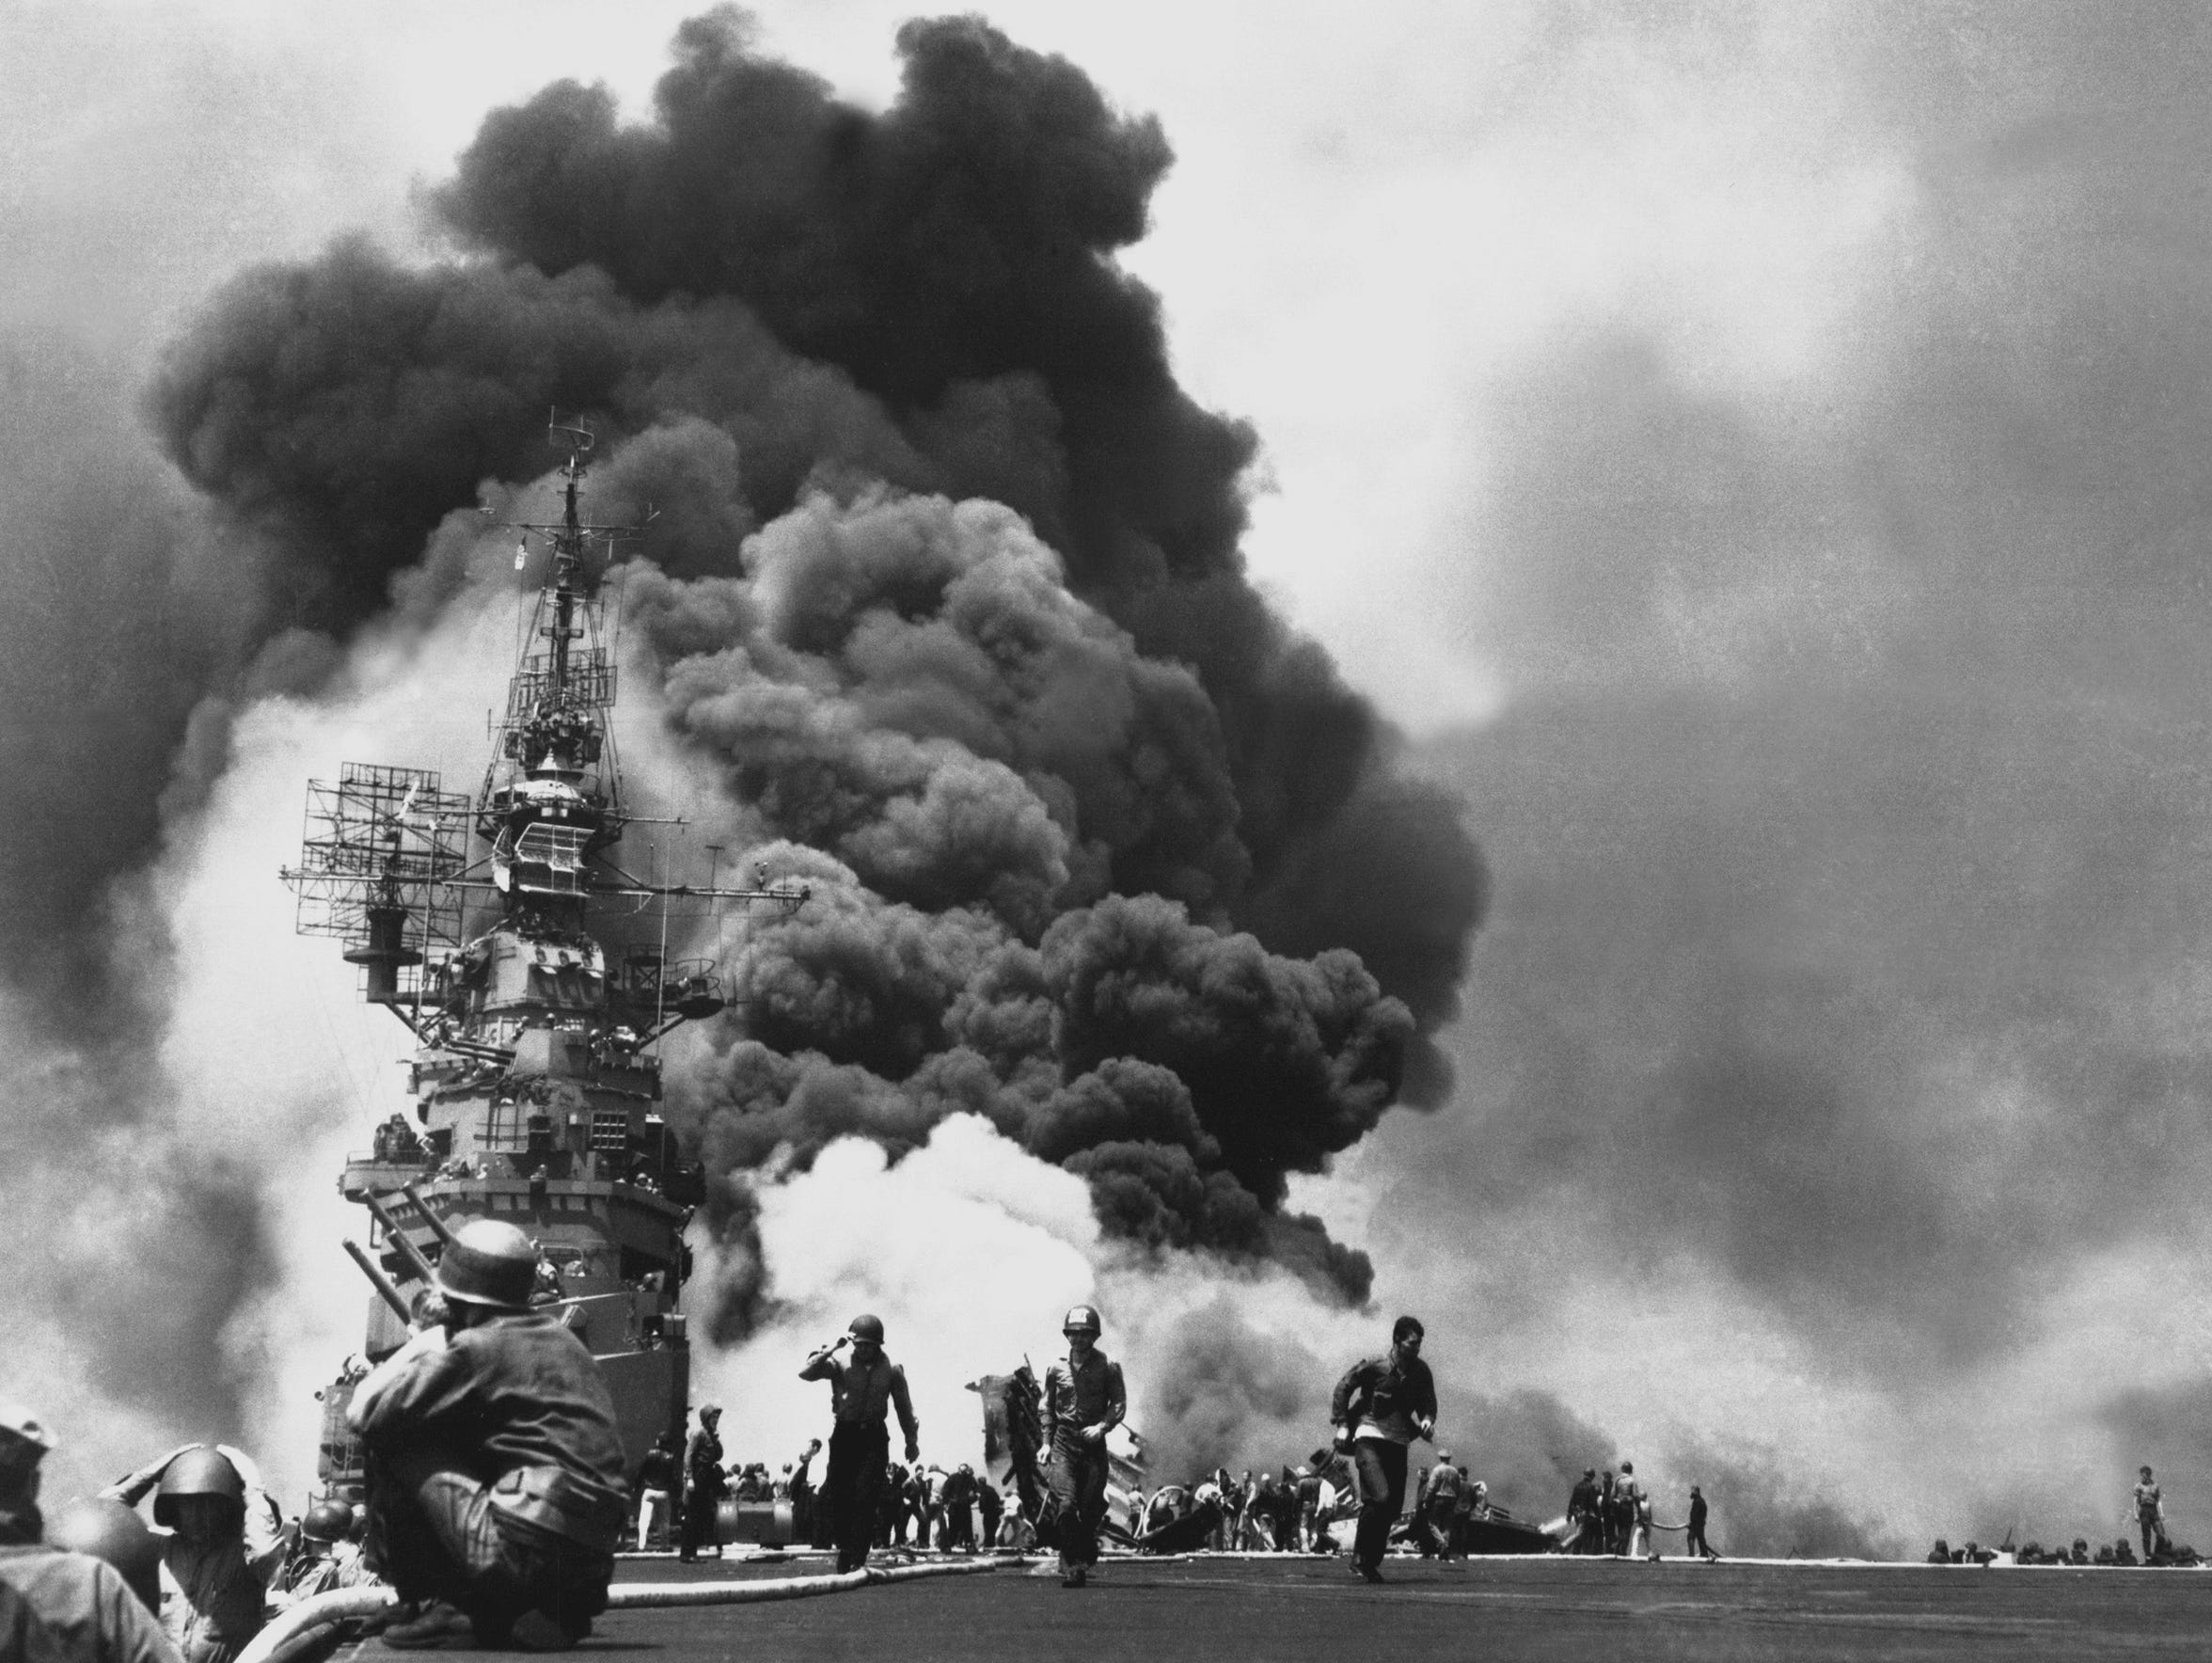 USS BUNKER HILL hit by two Kamikazes in 30 seconds